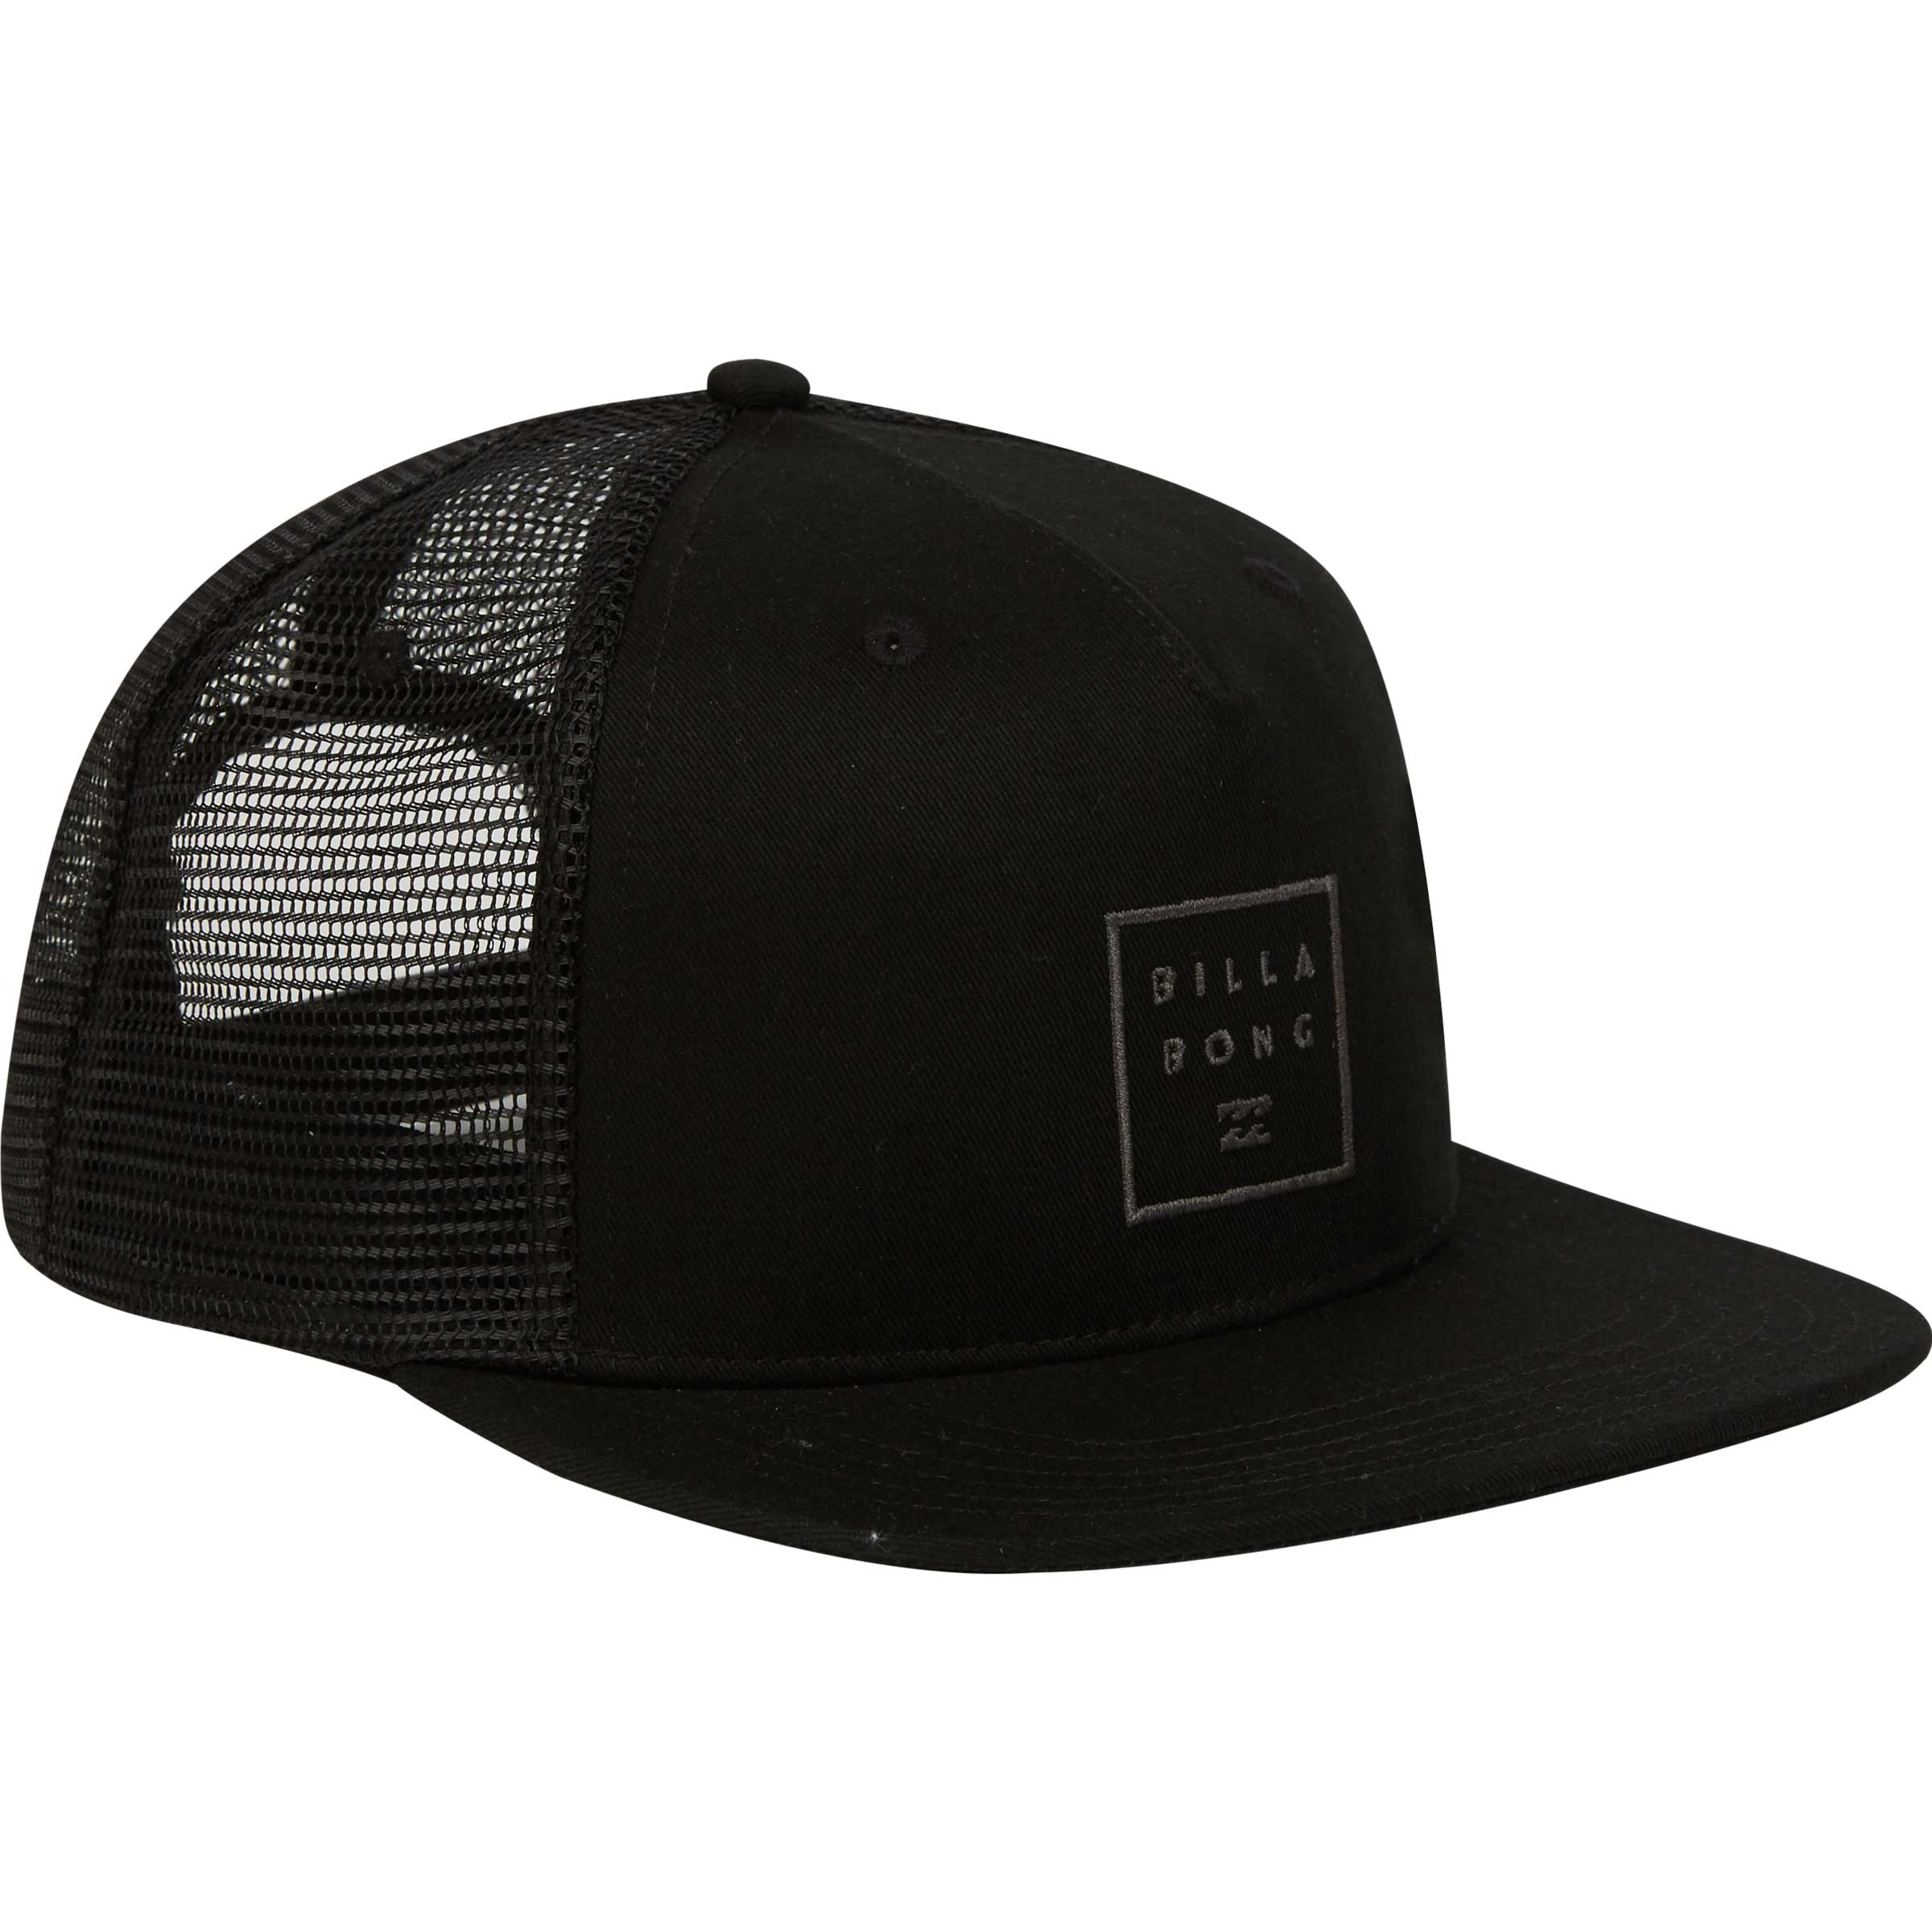 afa3f57c0a4 Billabong Mens Stacked Trucker Hat In Black – Current Apparel ...